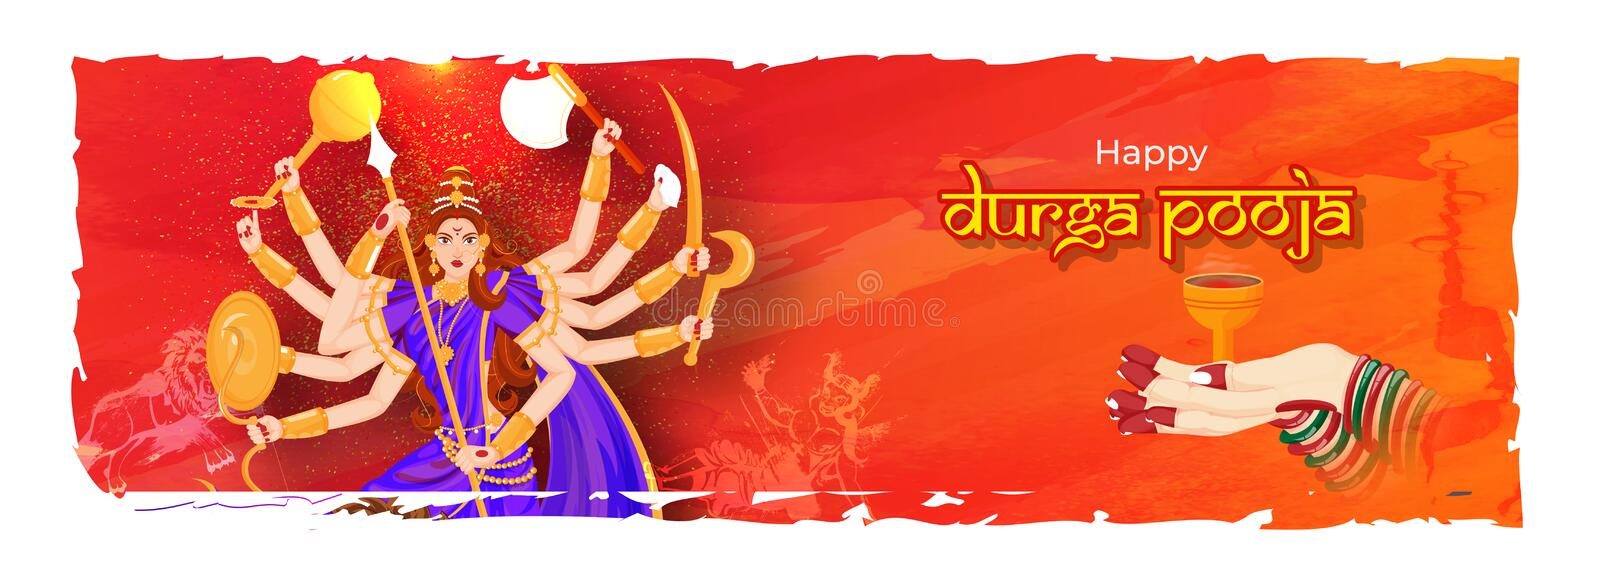 Creative header or banner design with illustration of Goddess Durga. Creative header or banner design with illustration of Goddess Durga and woman hand holding royalty free illustration